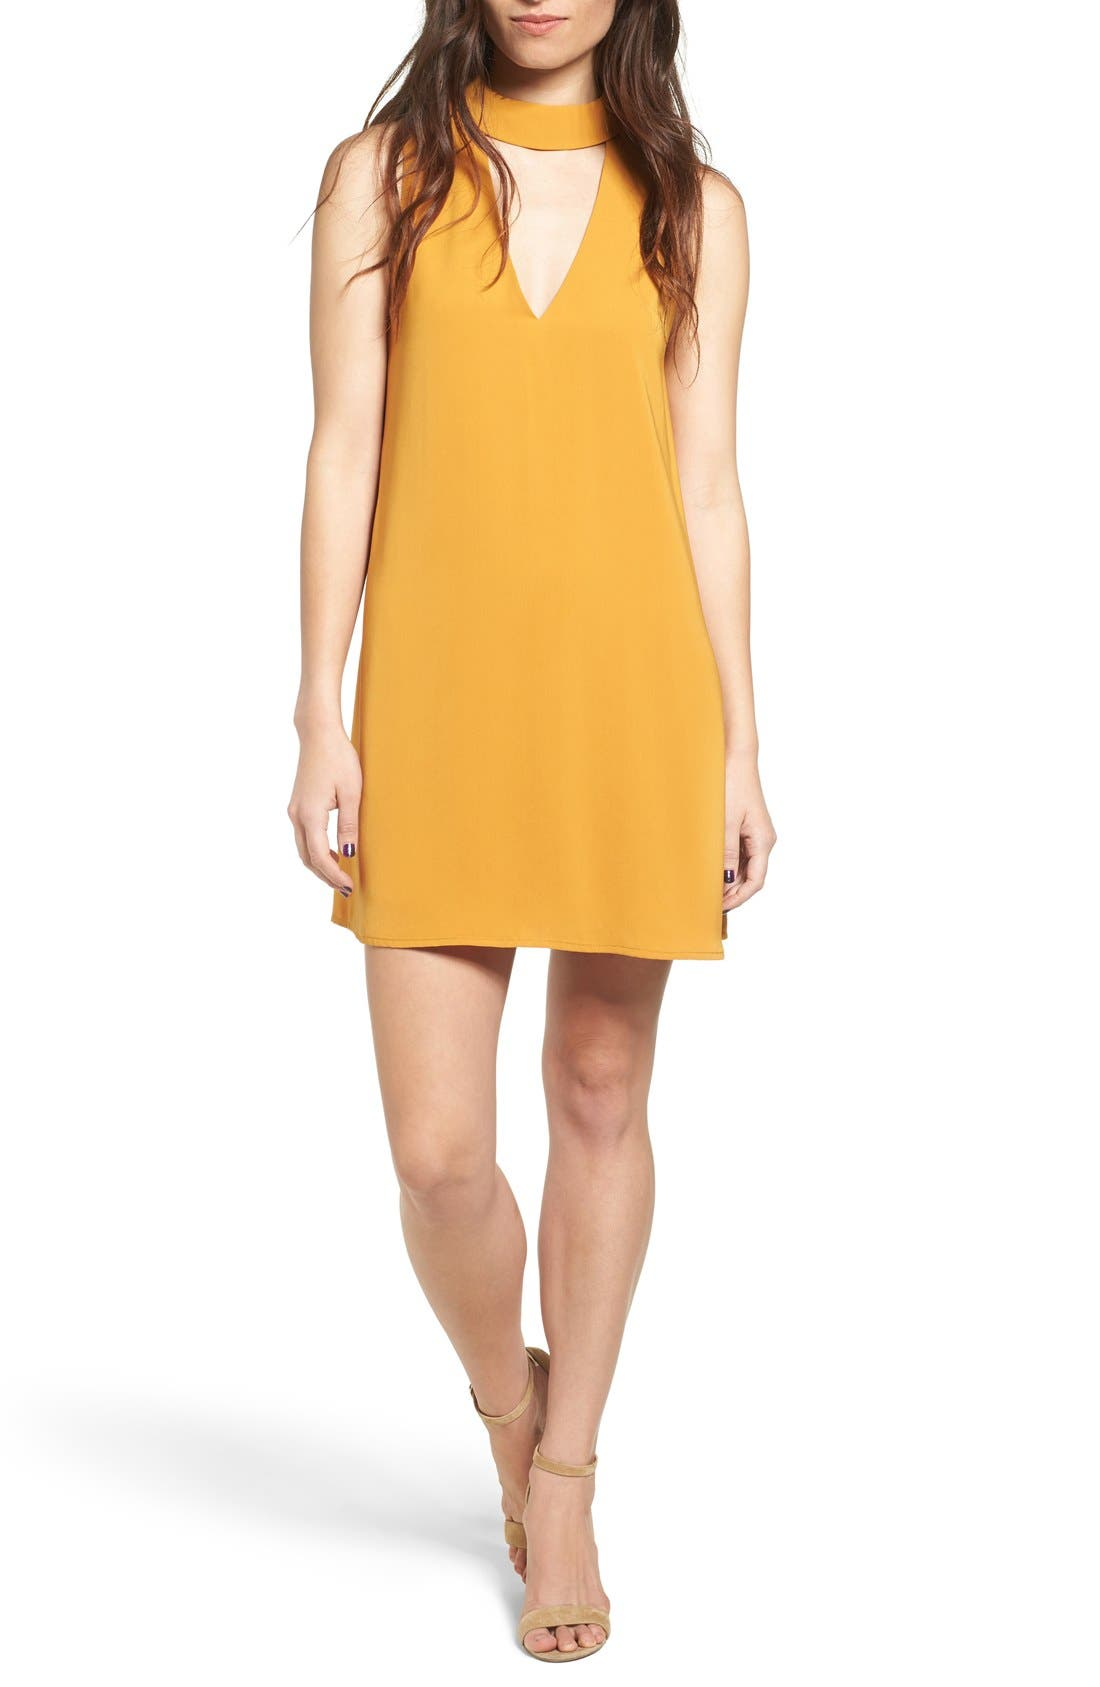 Alternate Image 1 Selected - Cream and Sugar Cutout Front Mock Neck Shift Dress